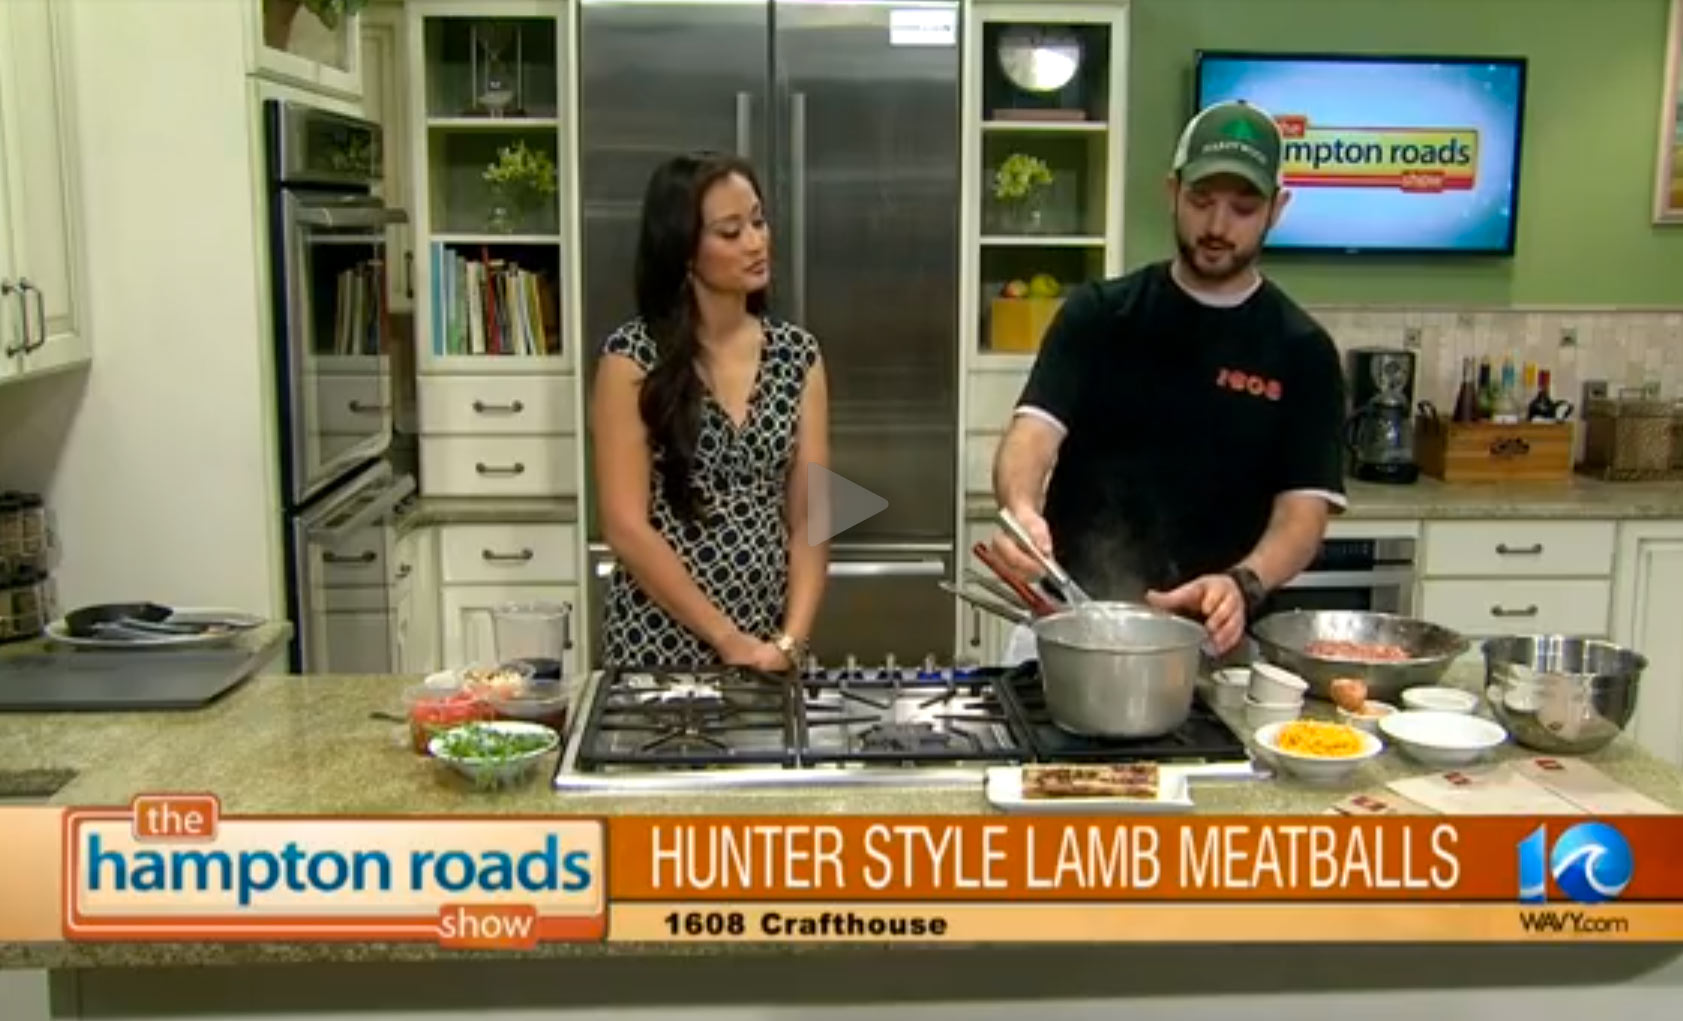 The Hampton Roads Show – Hunter Style Lamb Meatballs